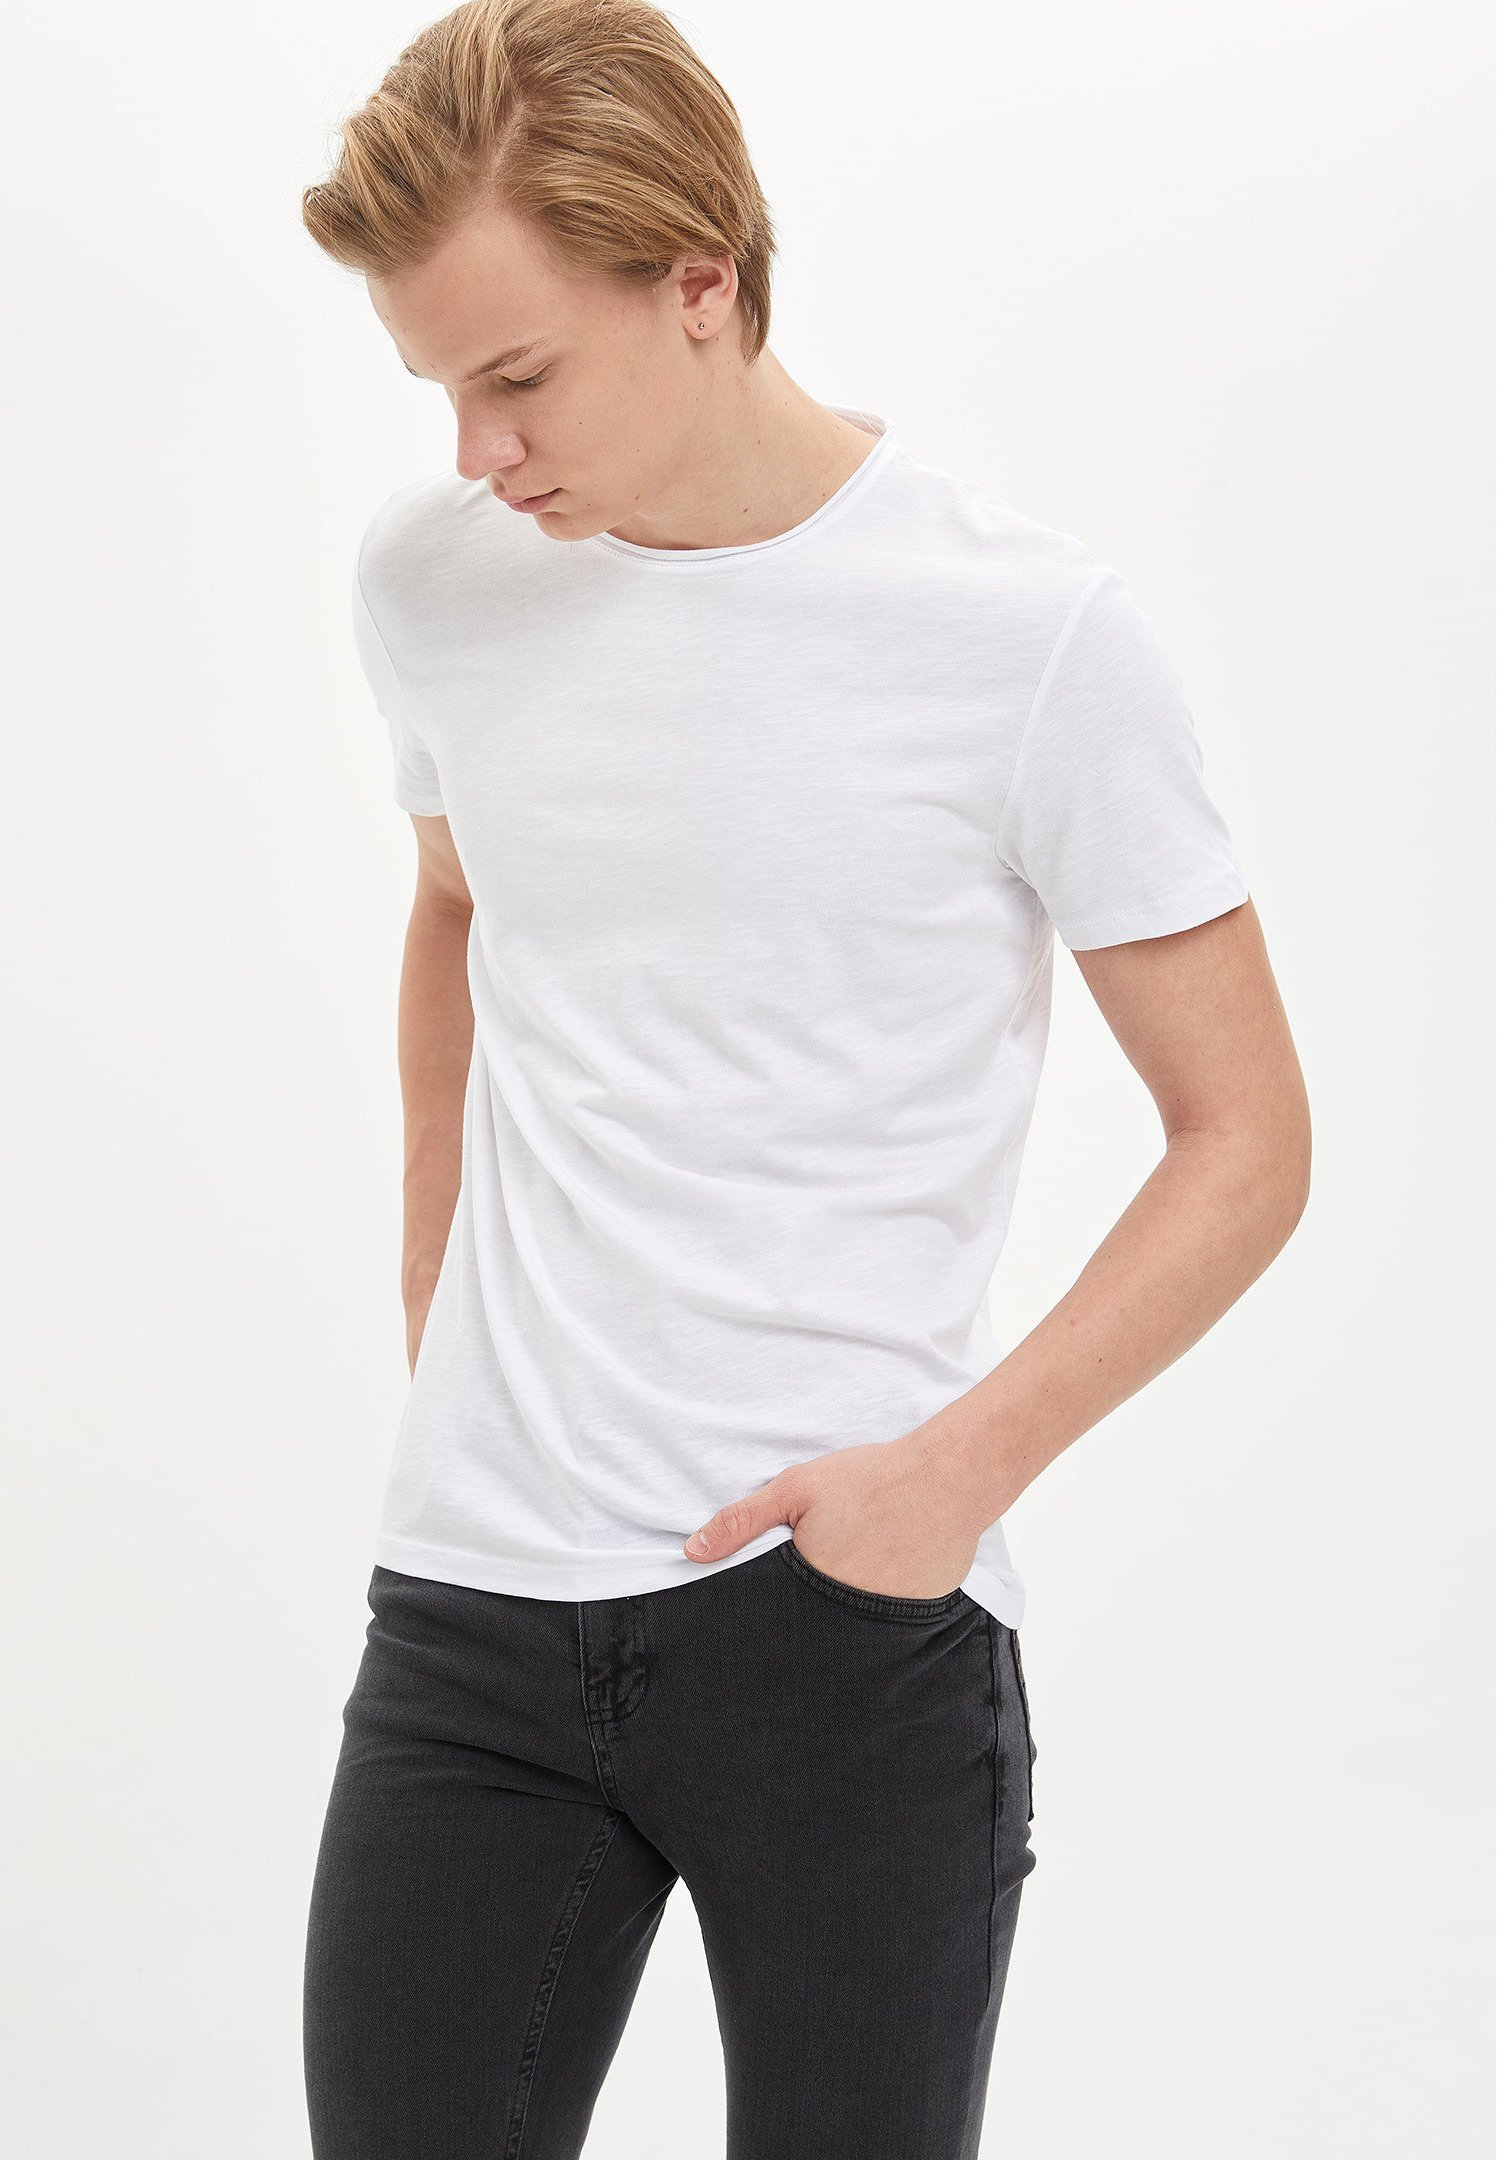 DeFacto Basic T-shirt - white M6vrD